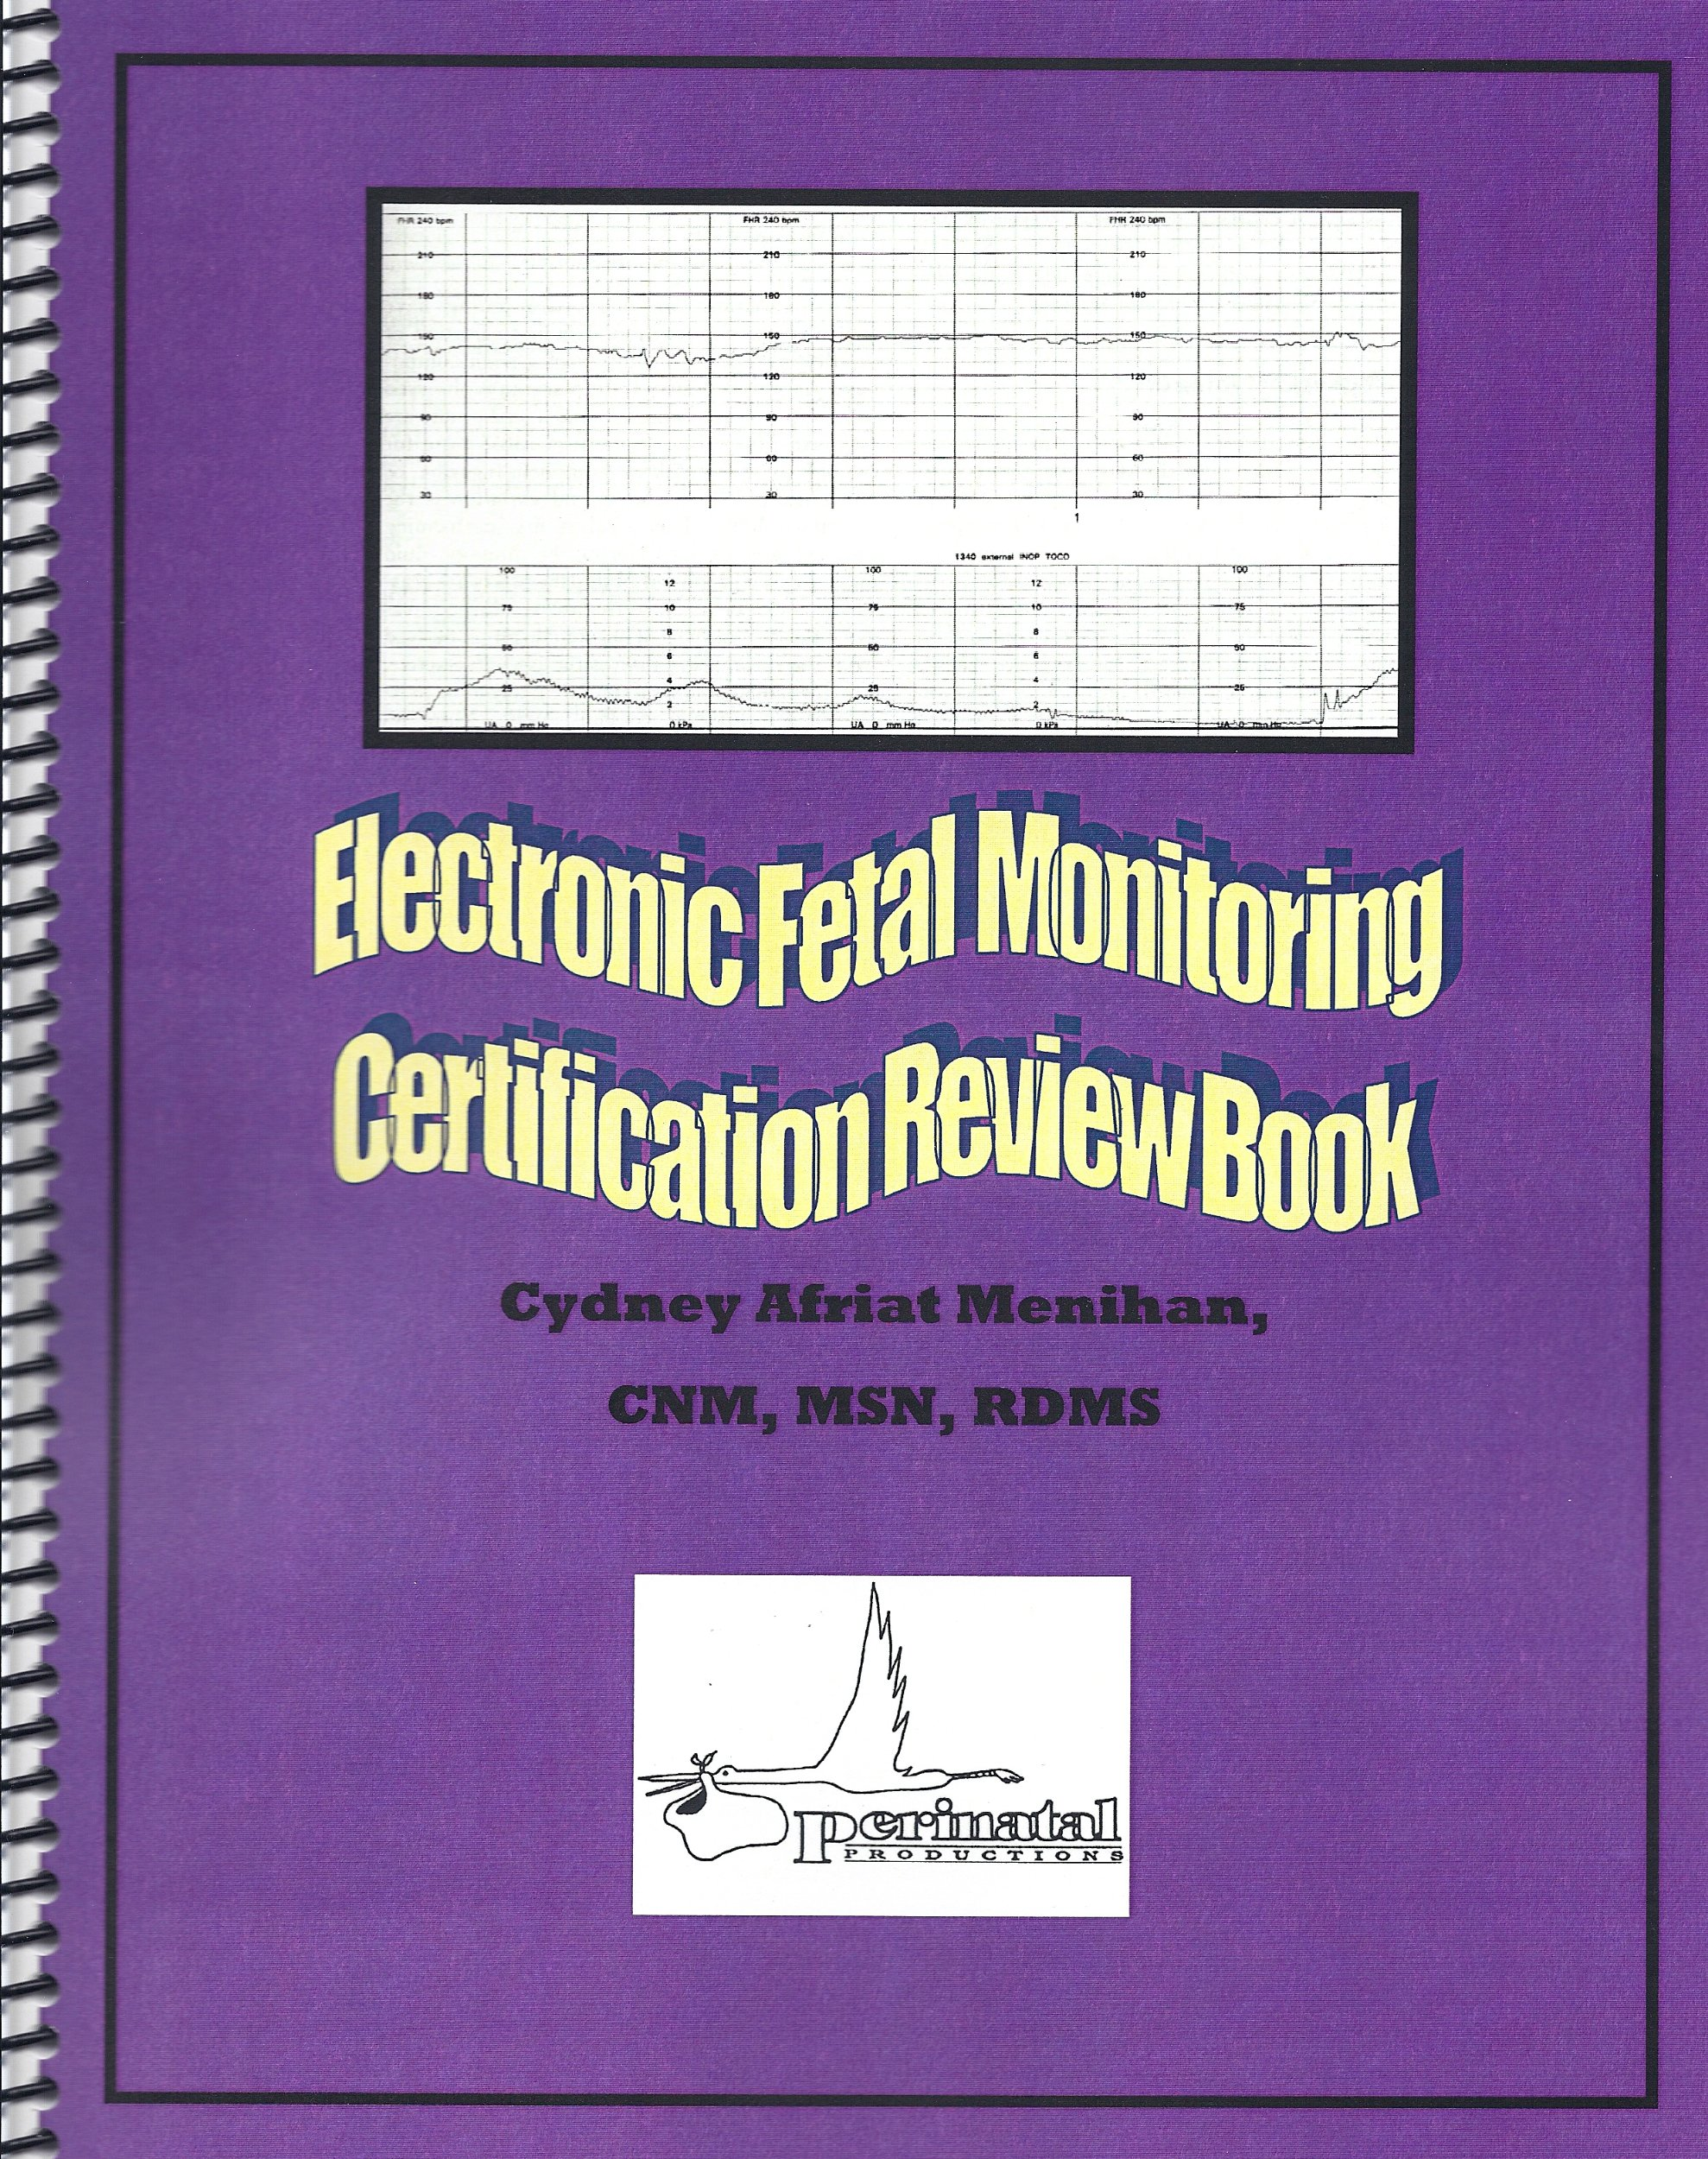 Electronic Fetal Monitoring Certification Review Book Cydney Afriat